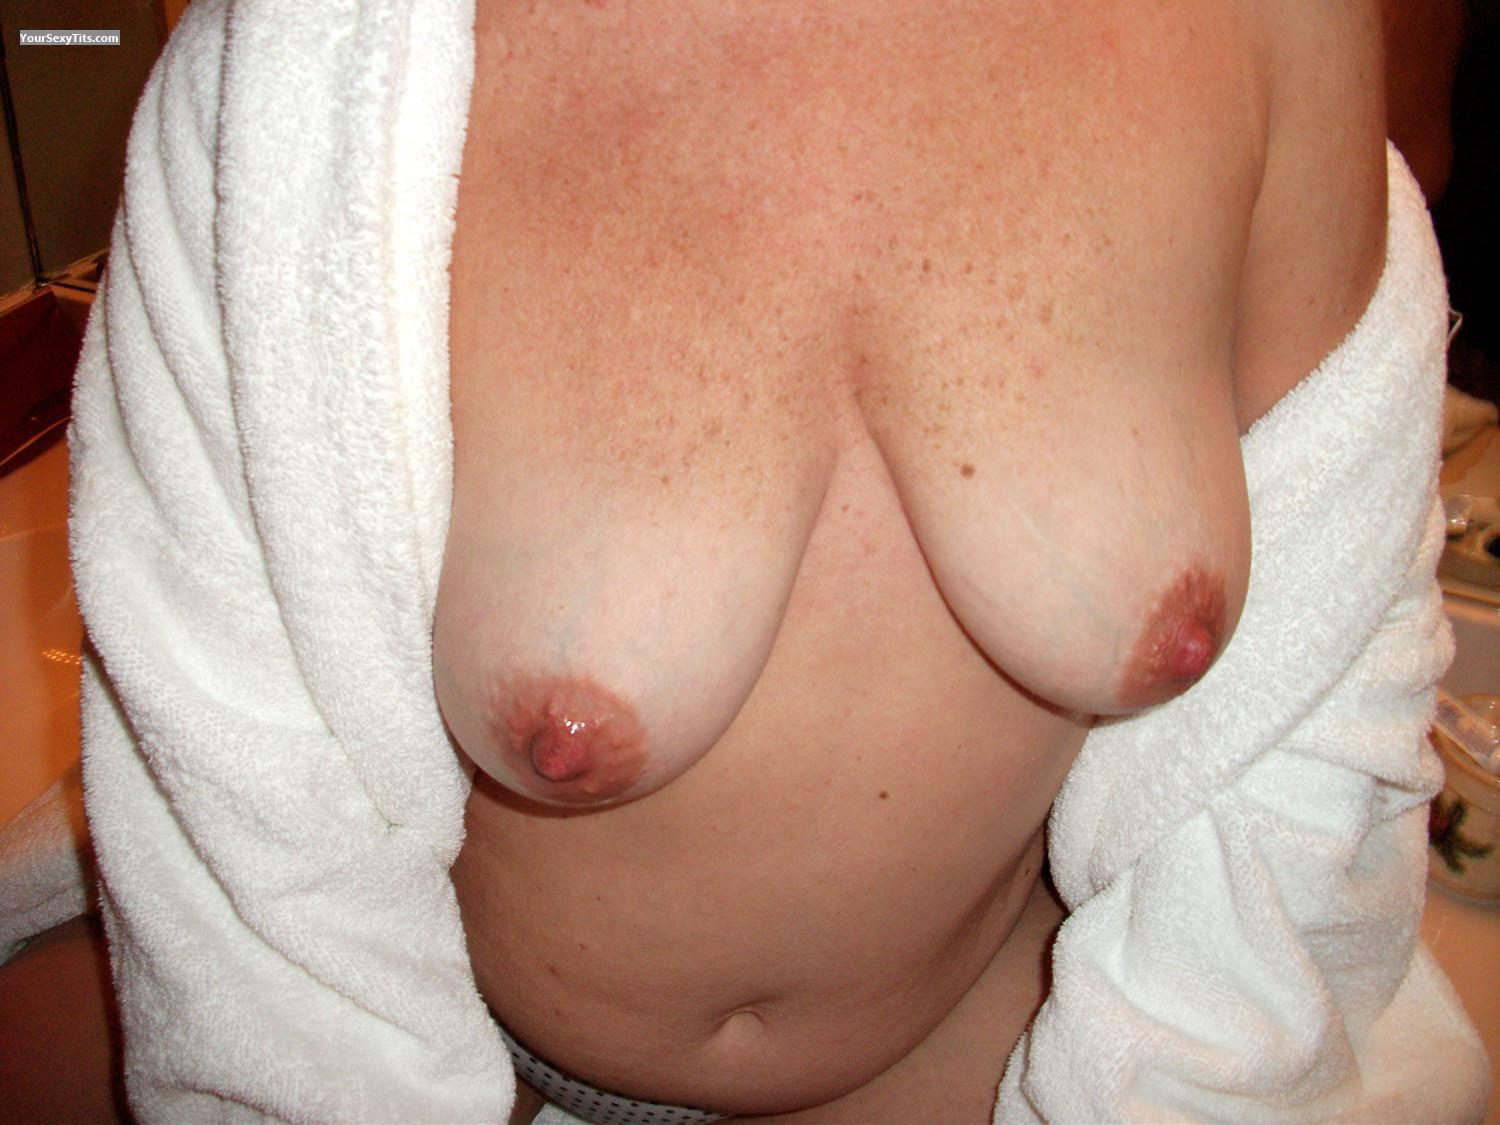 Tit Flash: Wife's Medium Tits - Helga from United States